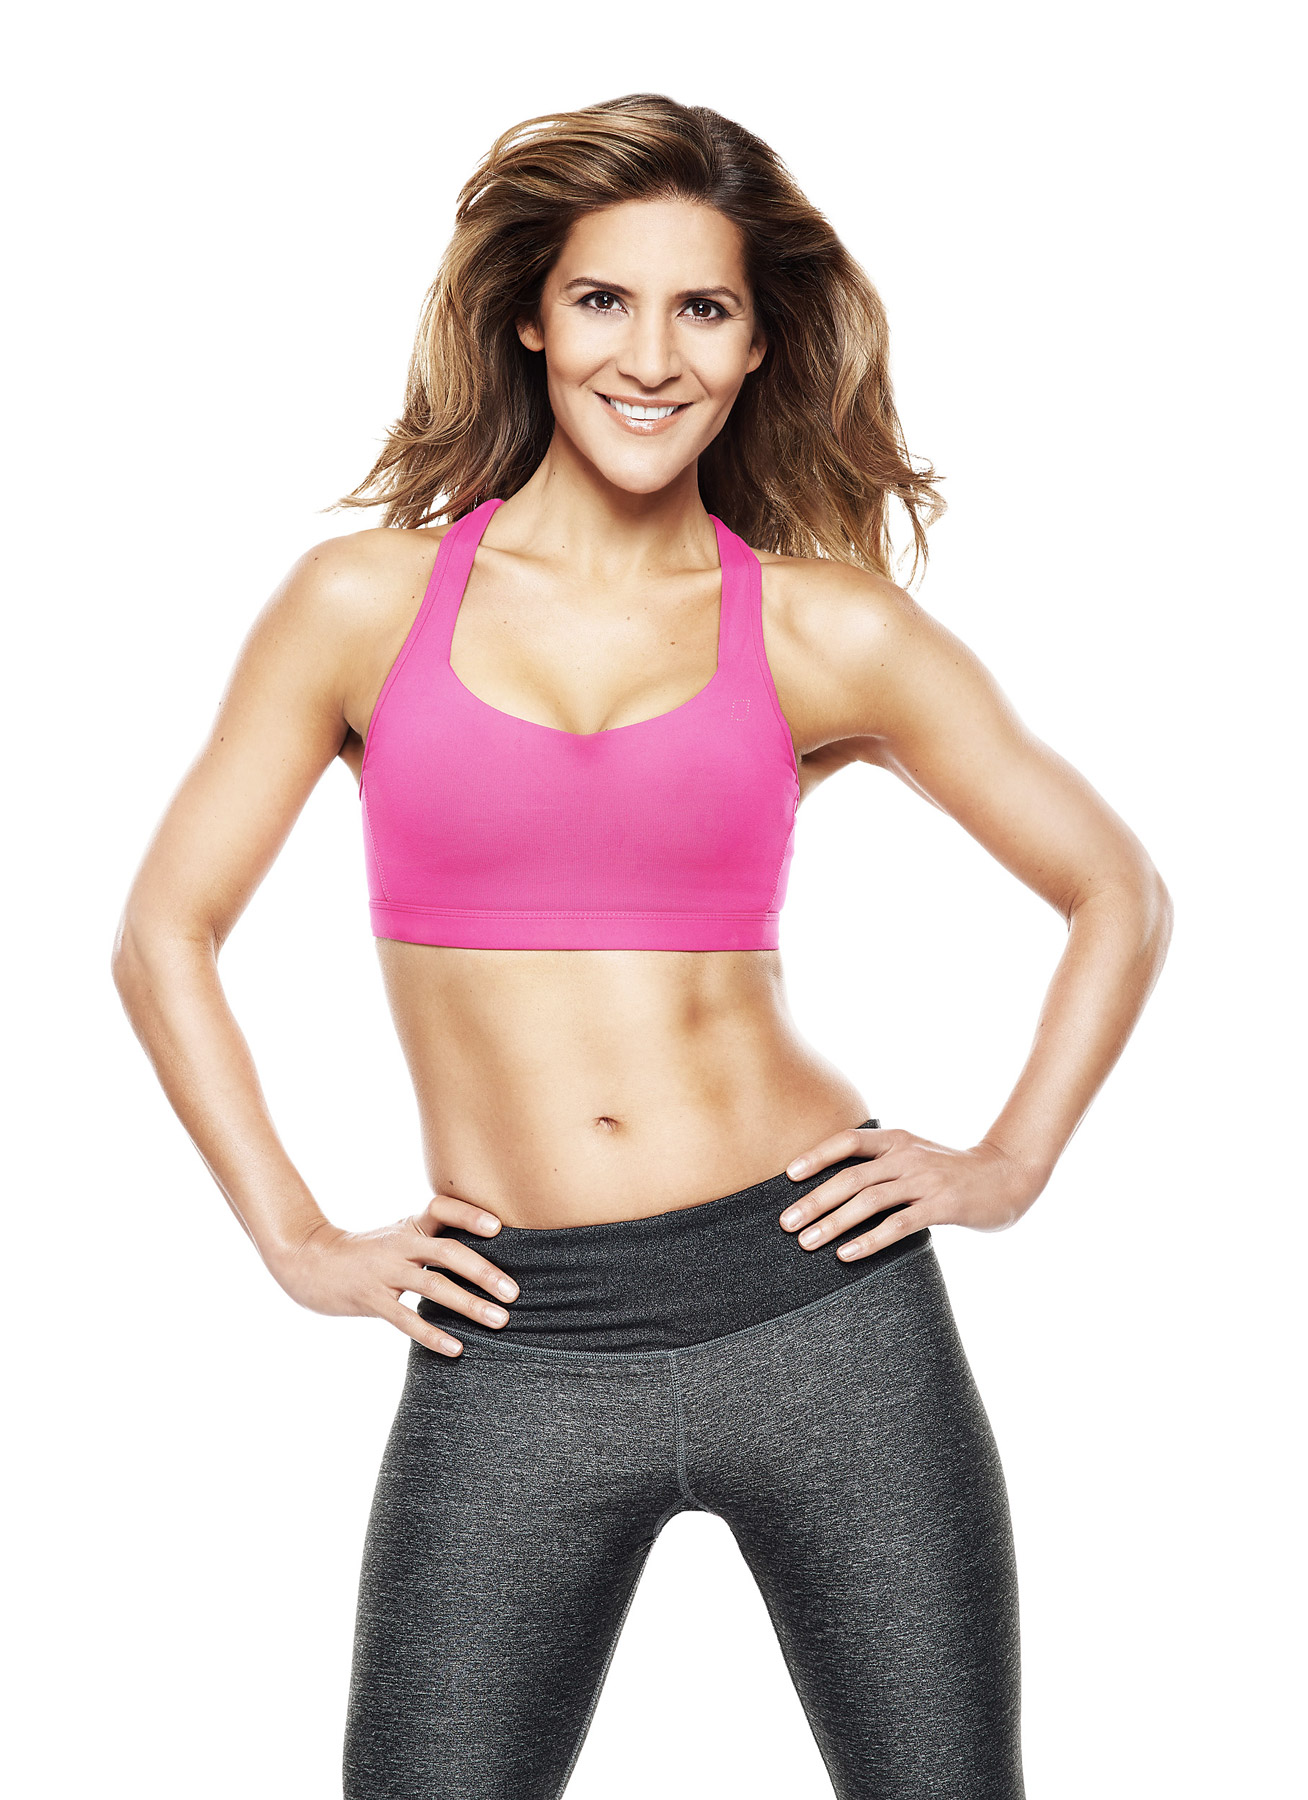 Amanda Byram in sportswear on a white background